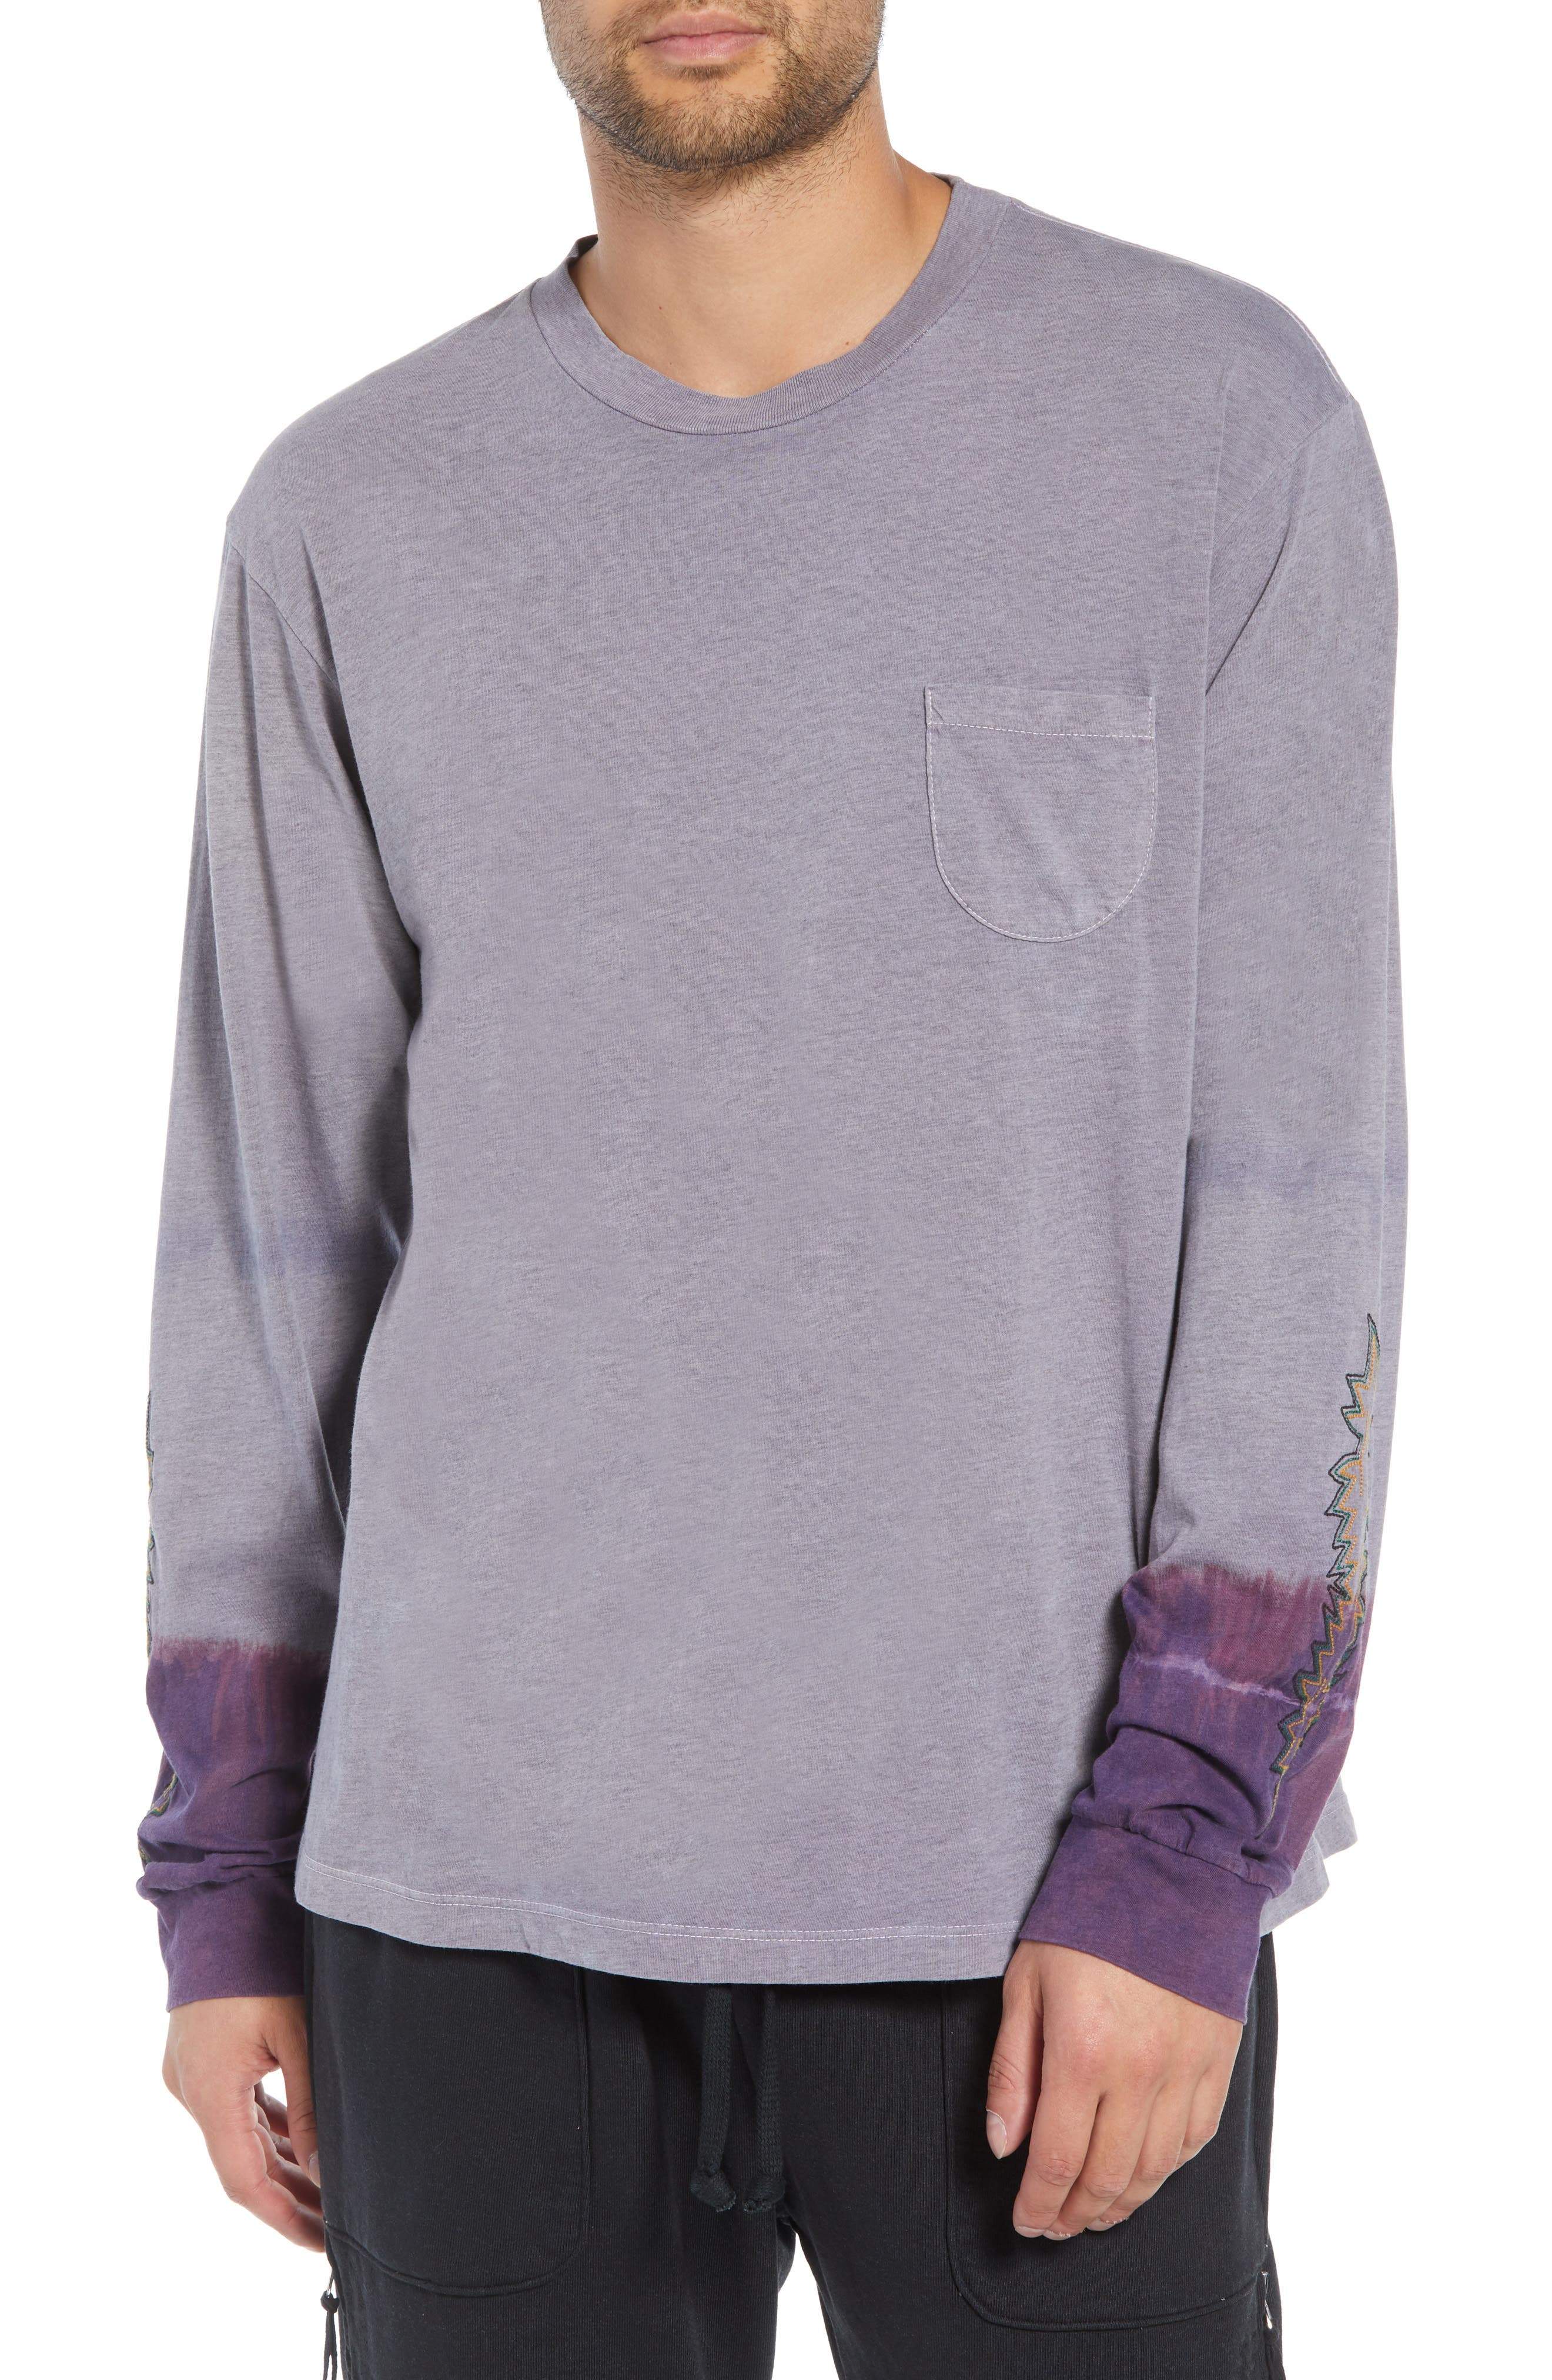 Kojak Pocket T-Shirt,                             Main thumbnail 1, color,                             PURPLE ASH